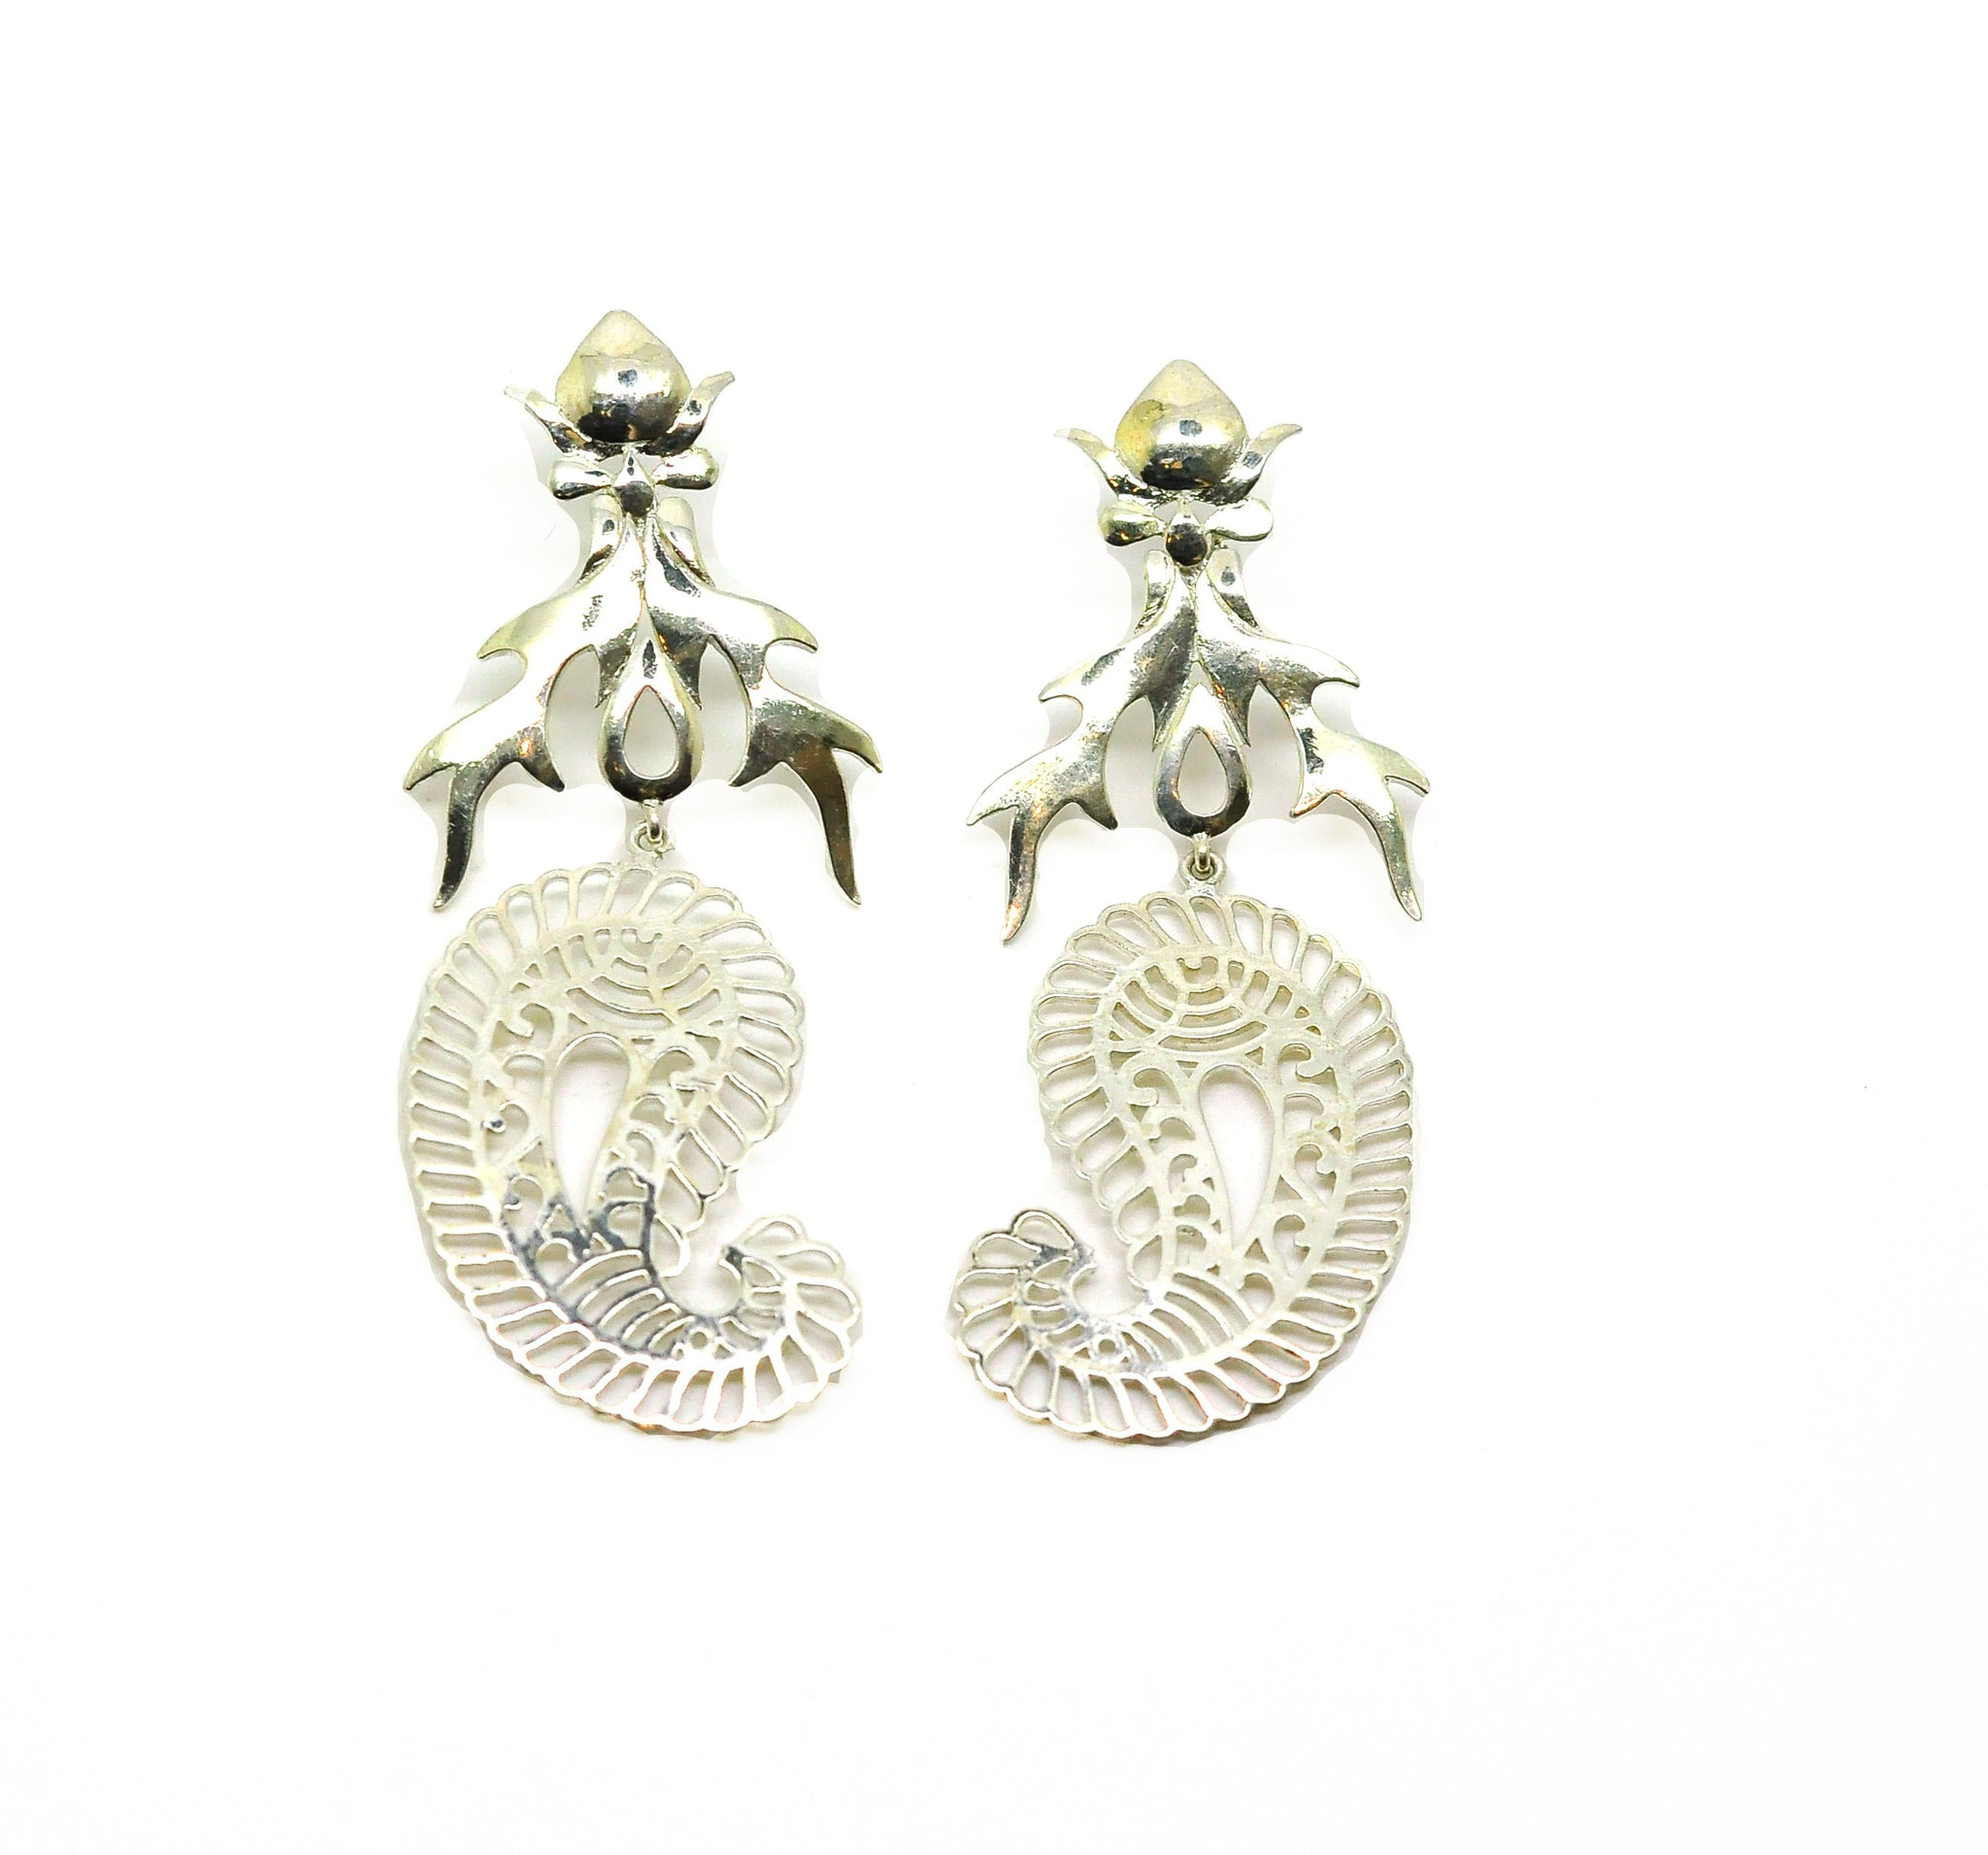 NEW Fire Filigree earring 3